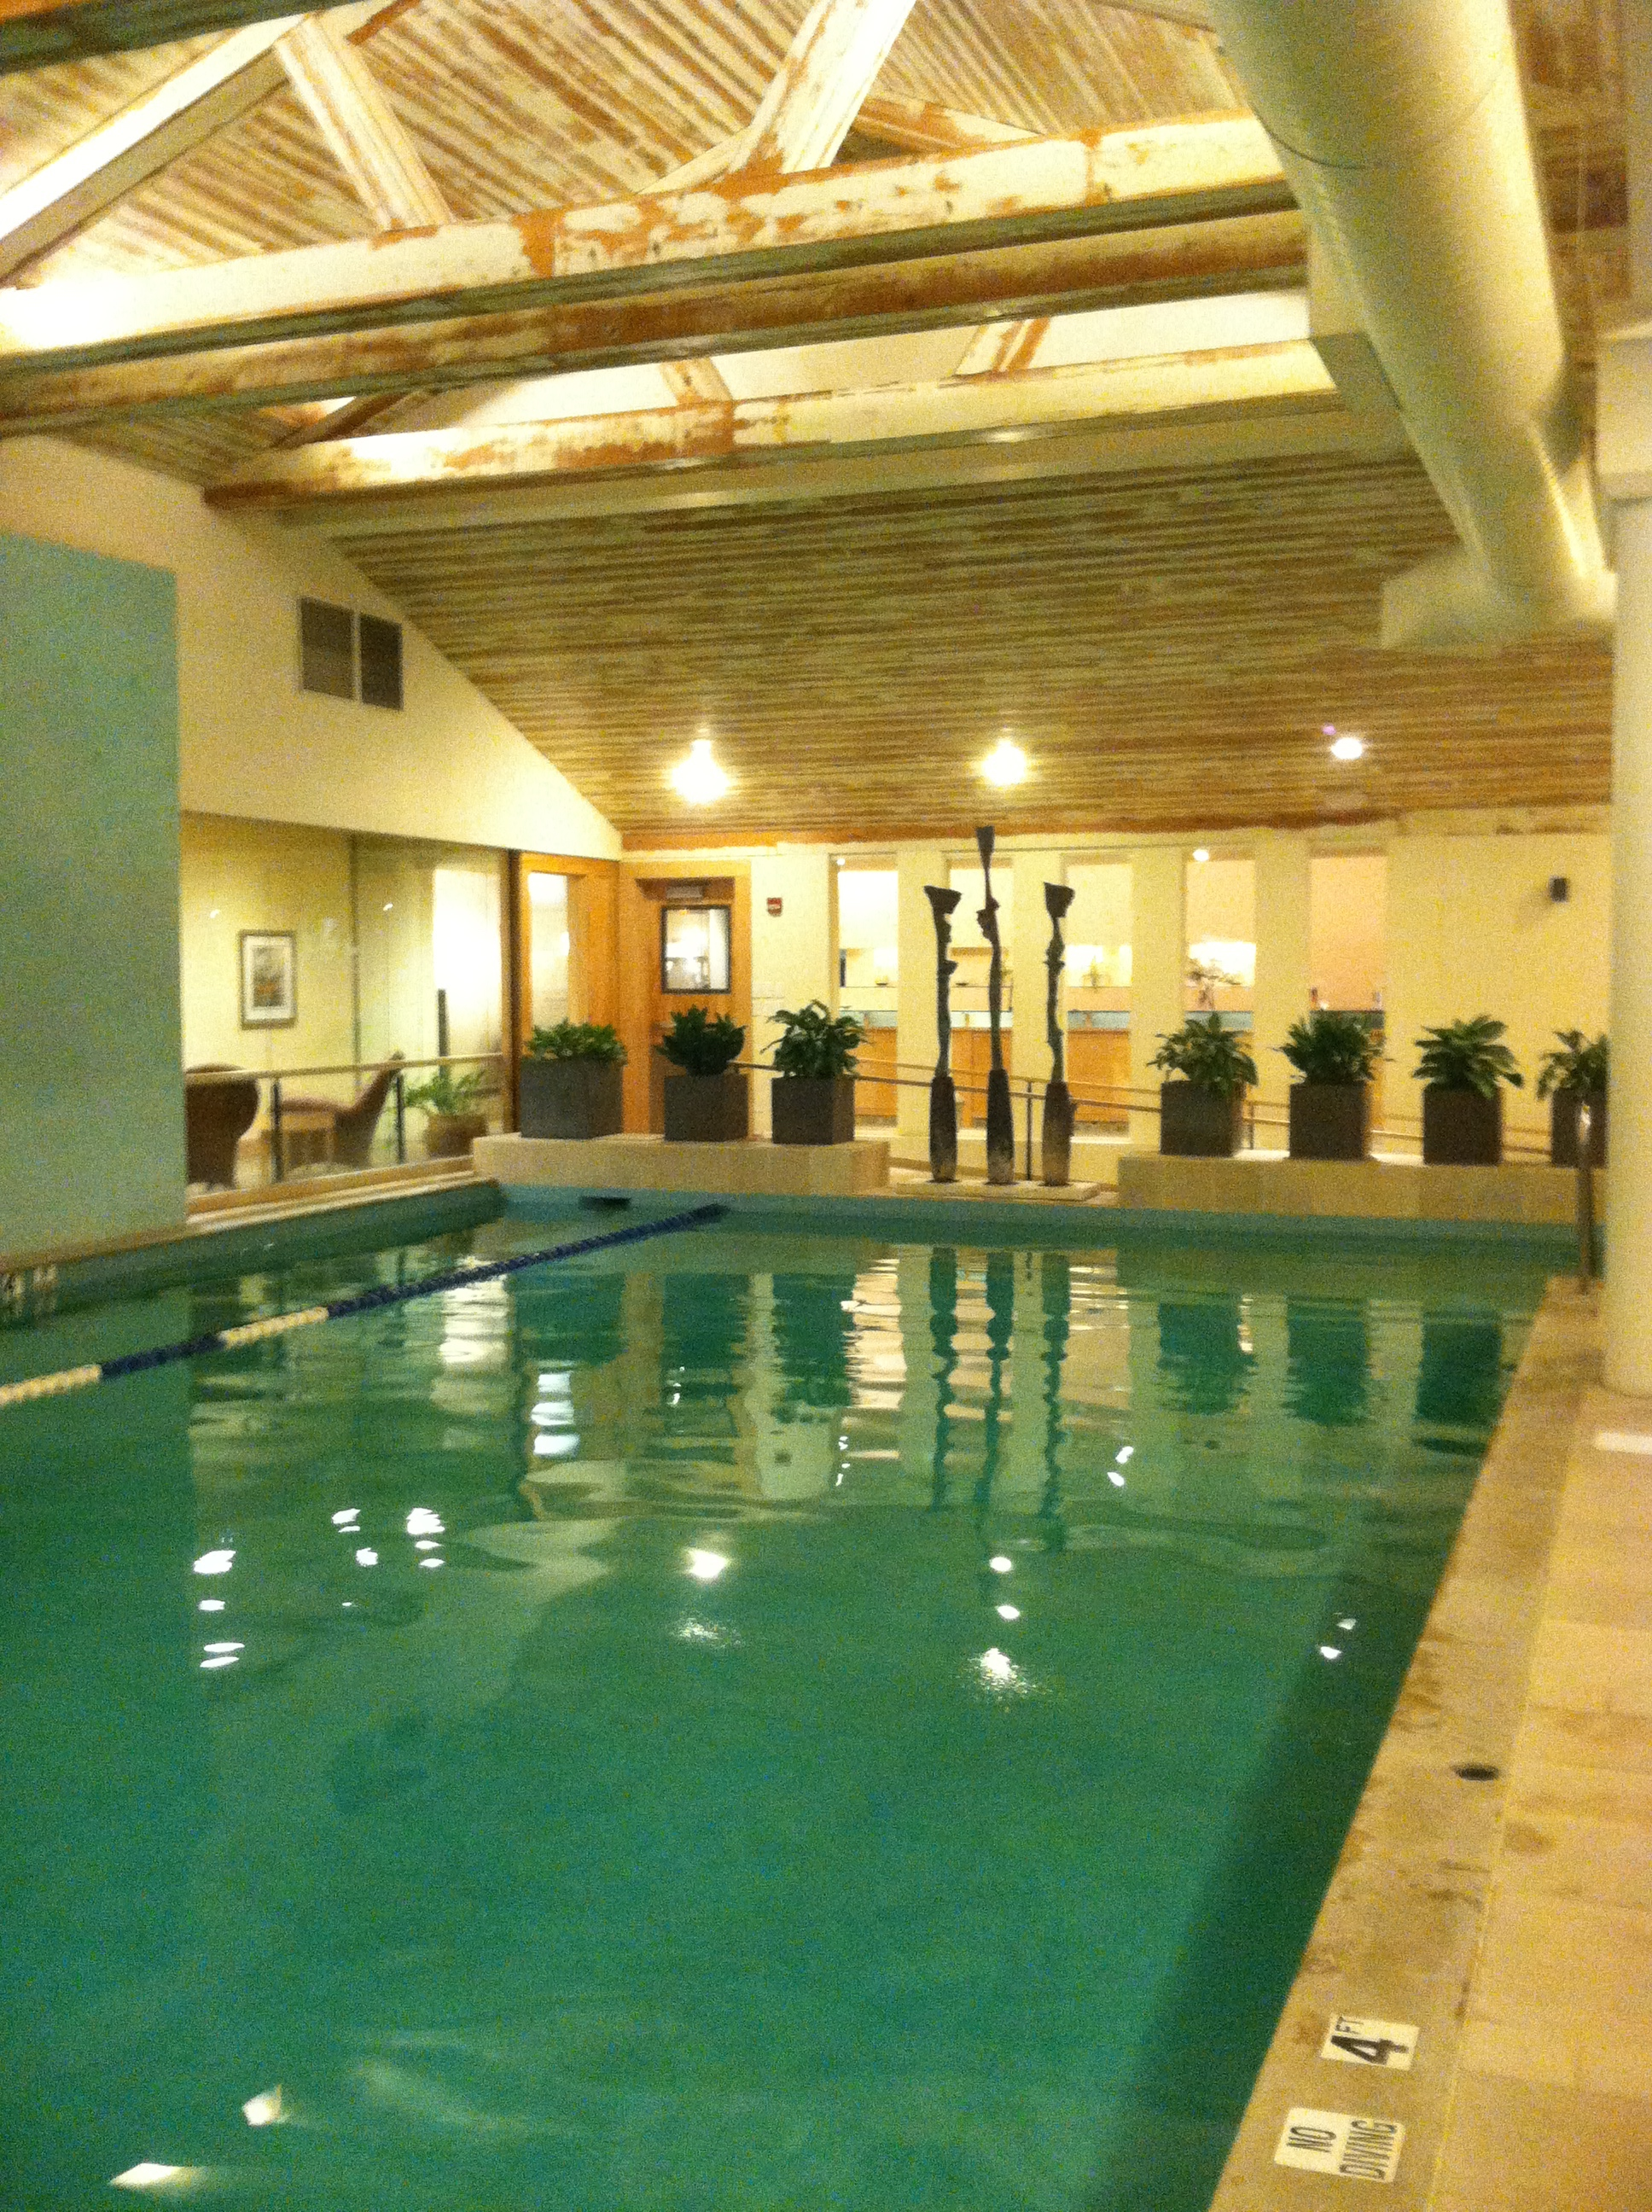 The indoor pool at Topnotch Resort